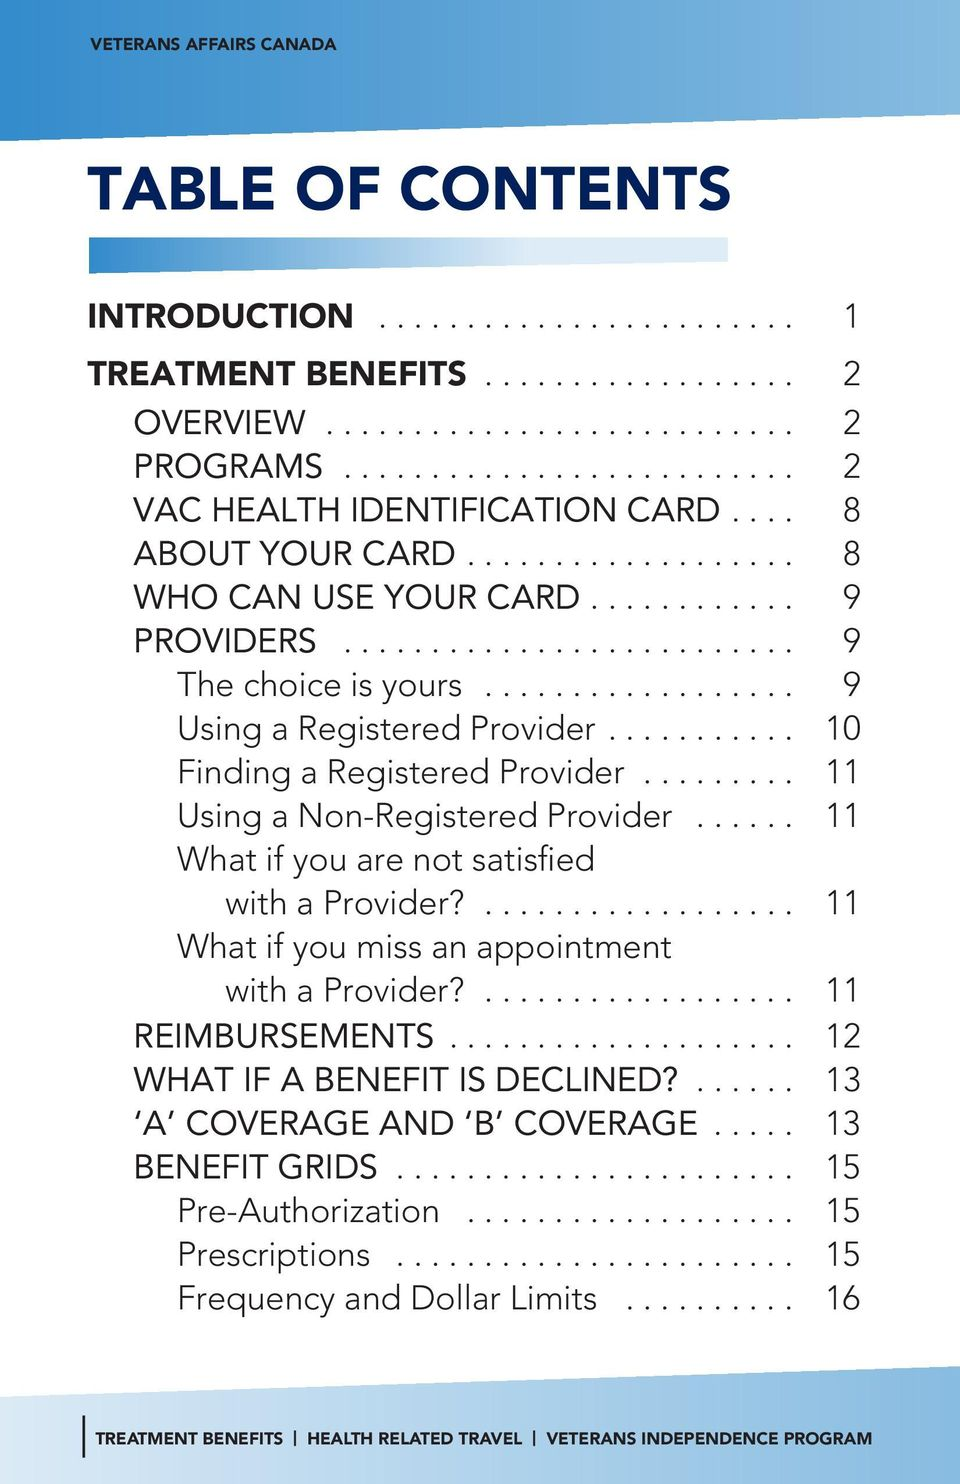 .. 11 Using a Non-Registered Provider... 11 What if you are not satisfied with a Provider?... 11 What if you miss an appointment with a Provider?... 11 REIMBURSEMENTS.